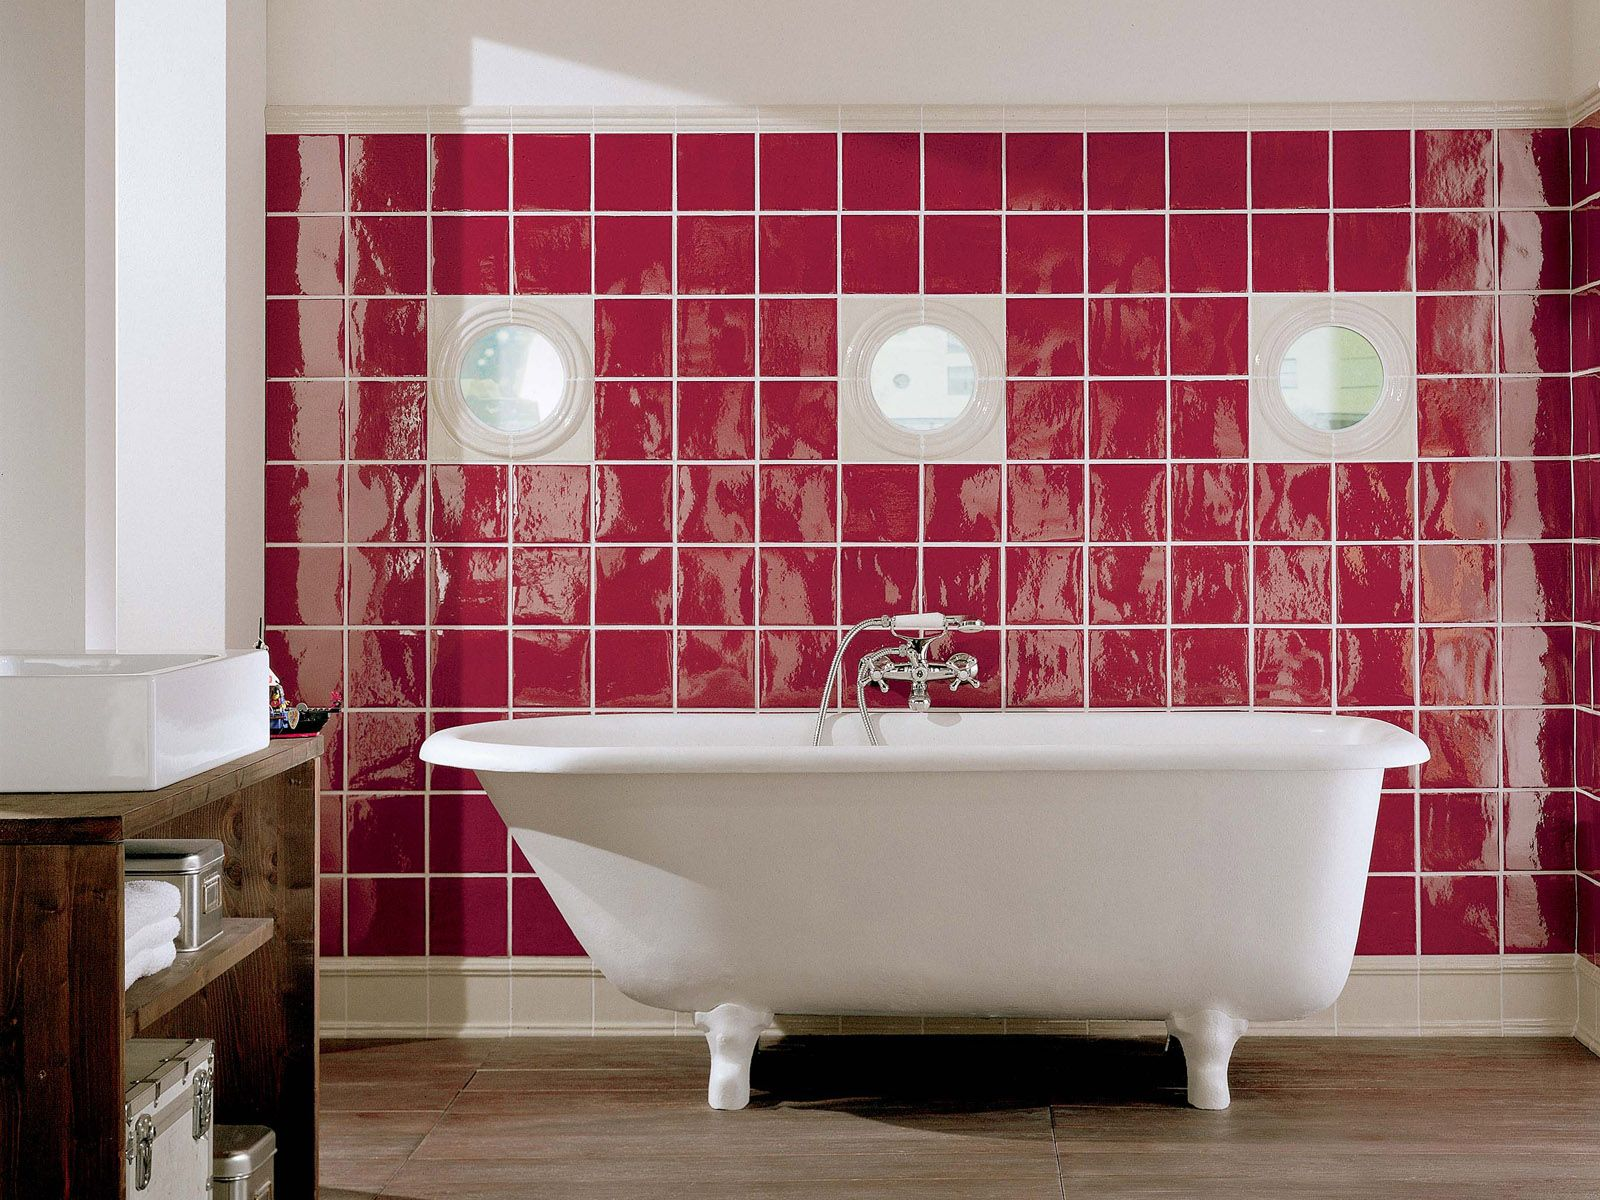 Red And White Bathroom Ideas Unique Pink And Whitebathroom  Casa  Pinterest  Bathroom Tiling Tile Decorating Design